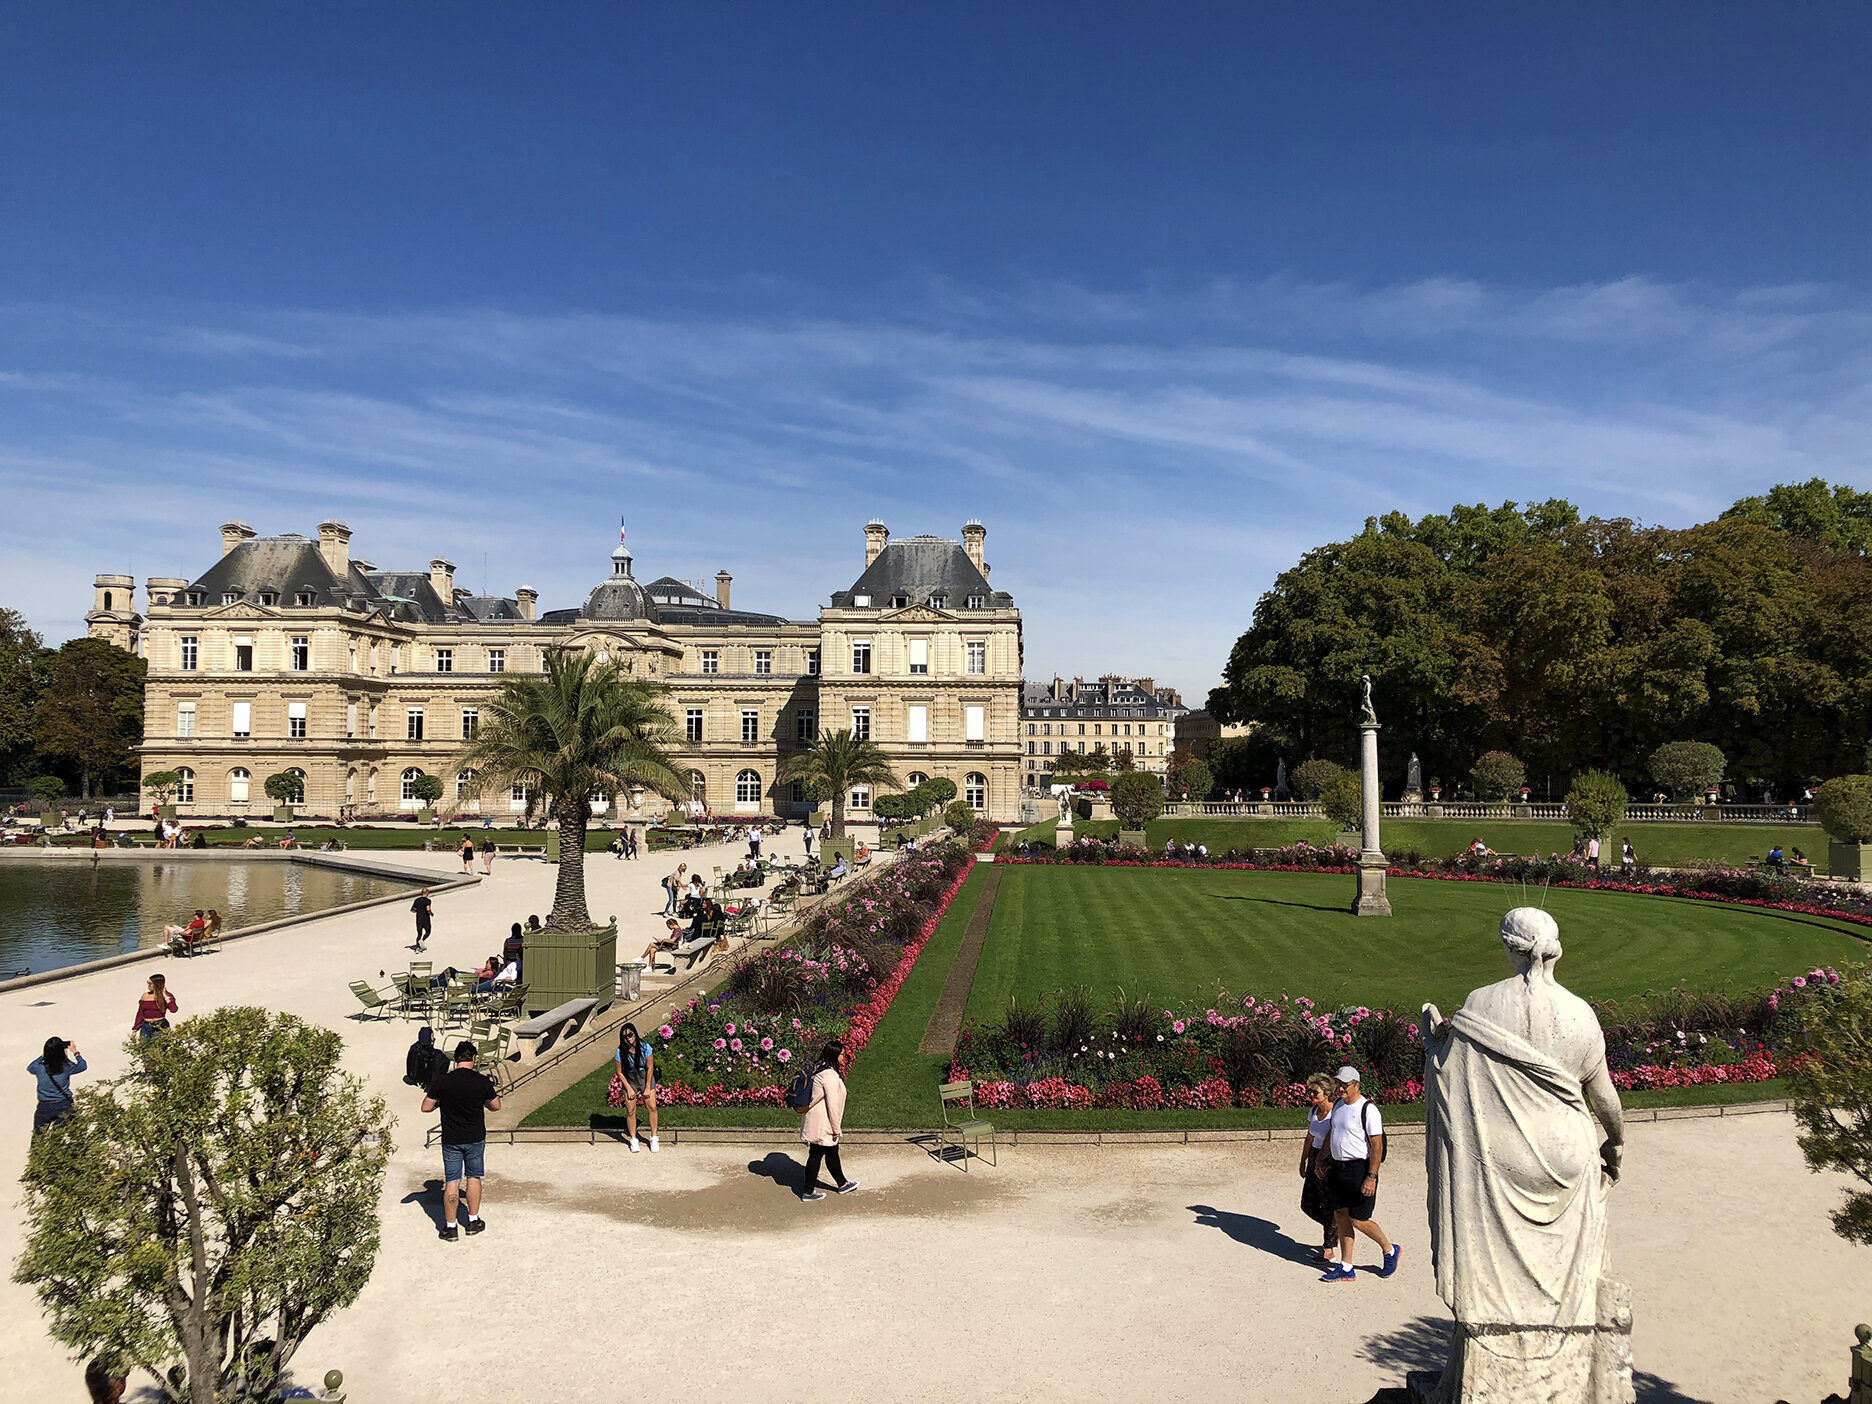 The Luxembourg palace is where the French Senate sits